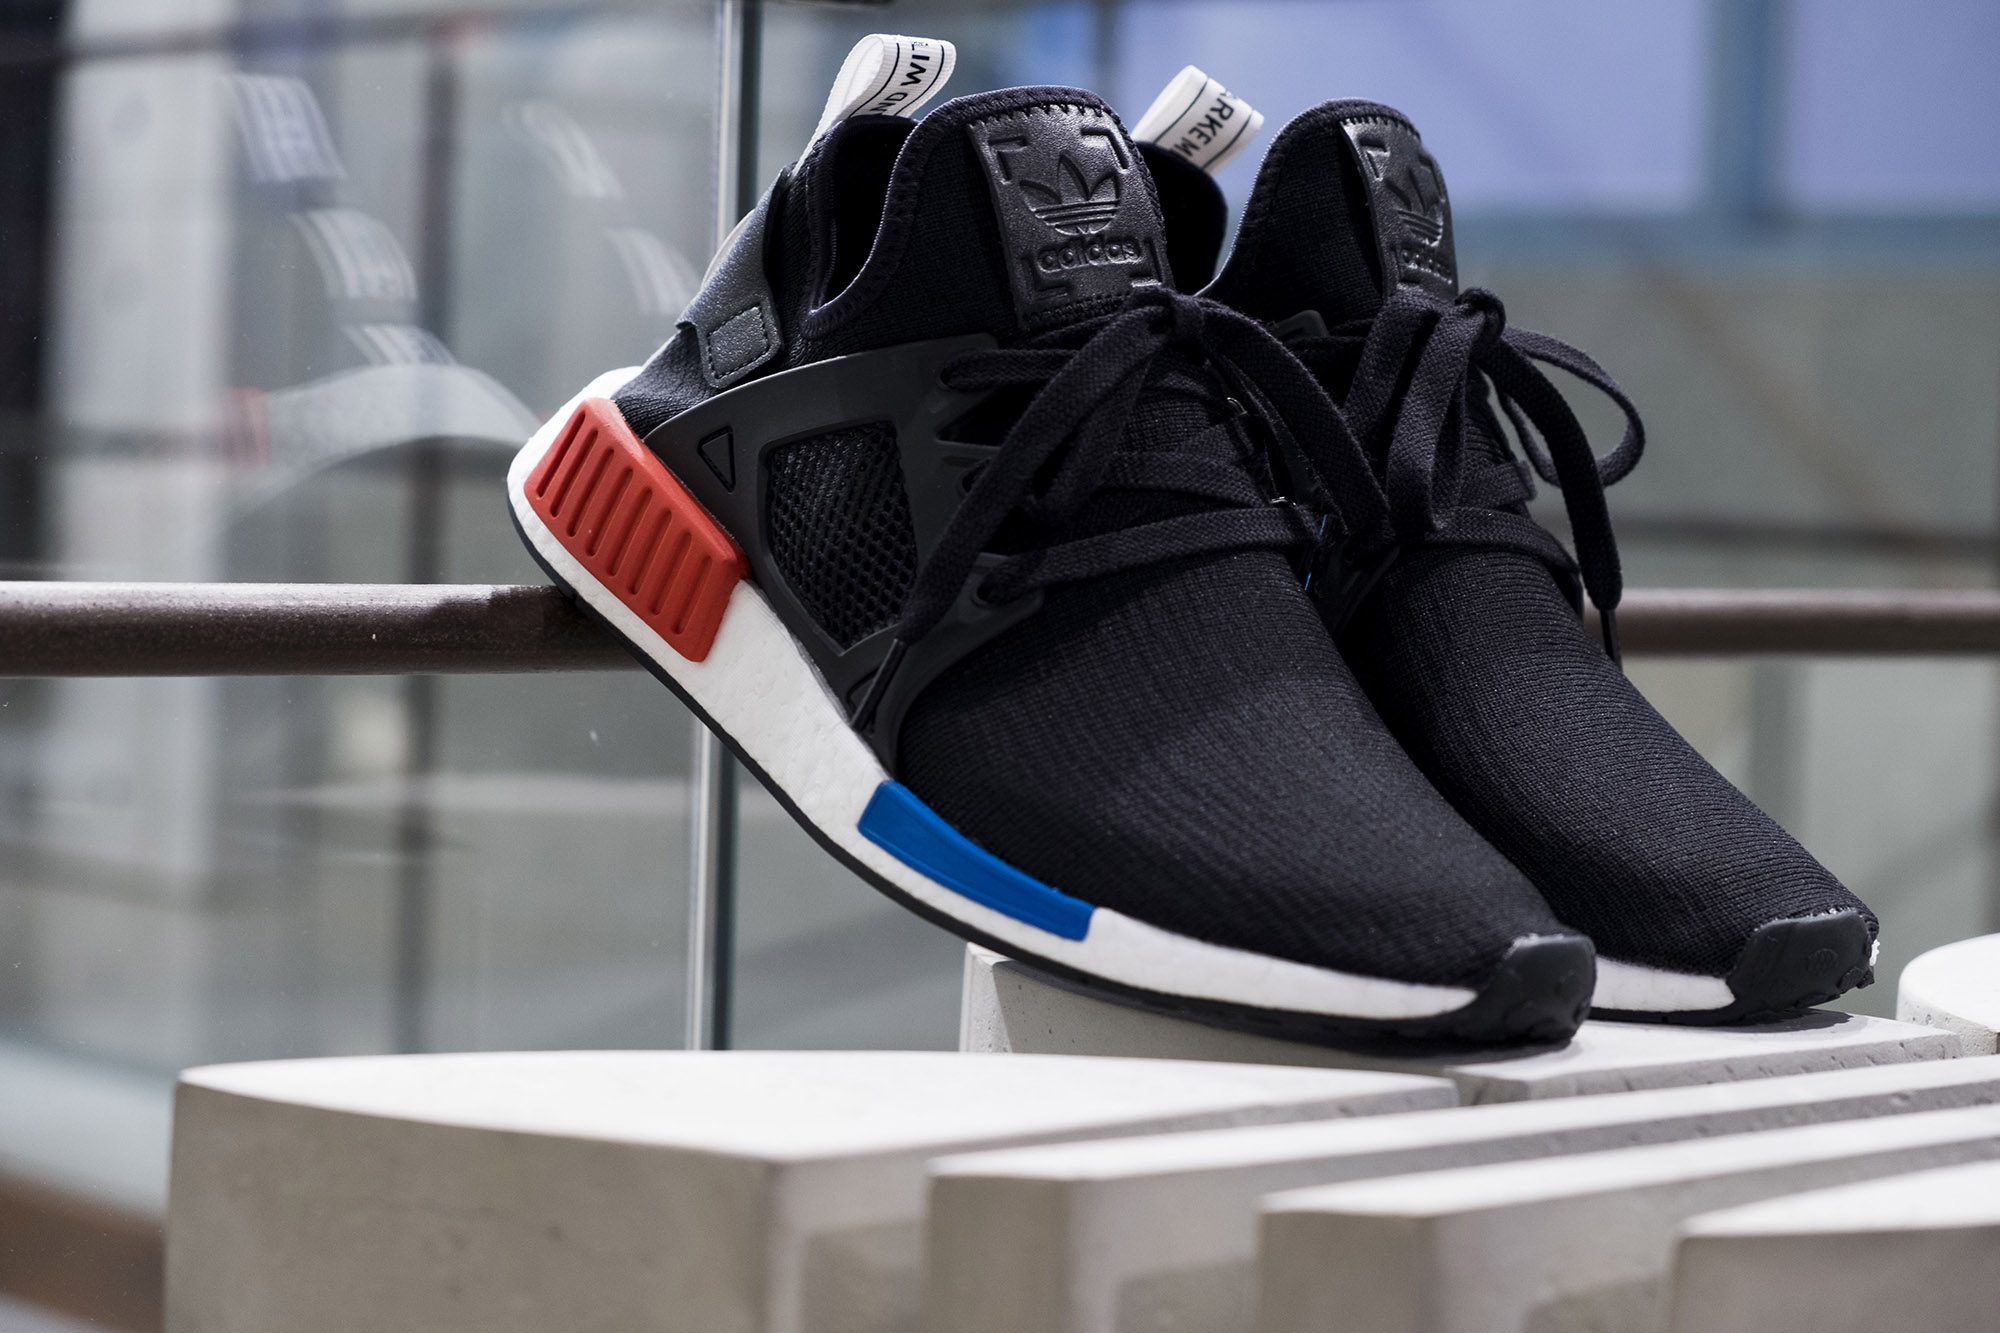 nmd-og-color-way-on-adidas-originals-nmd-xr1-09